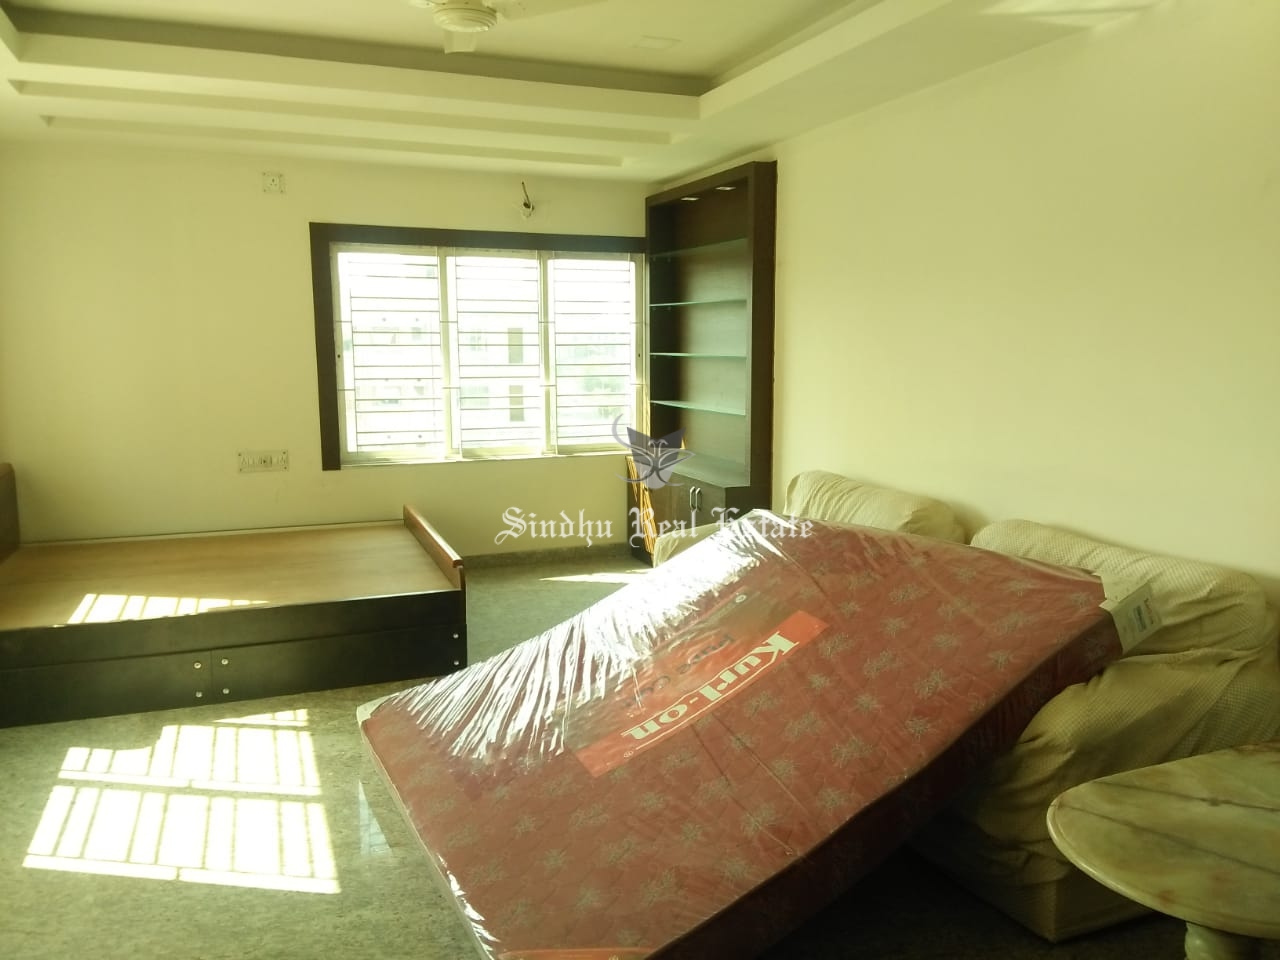 2 BHK fully furnished flat rent at Action area 1, New town